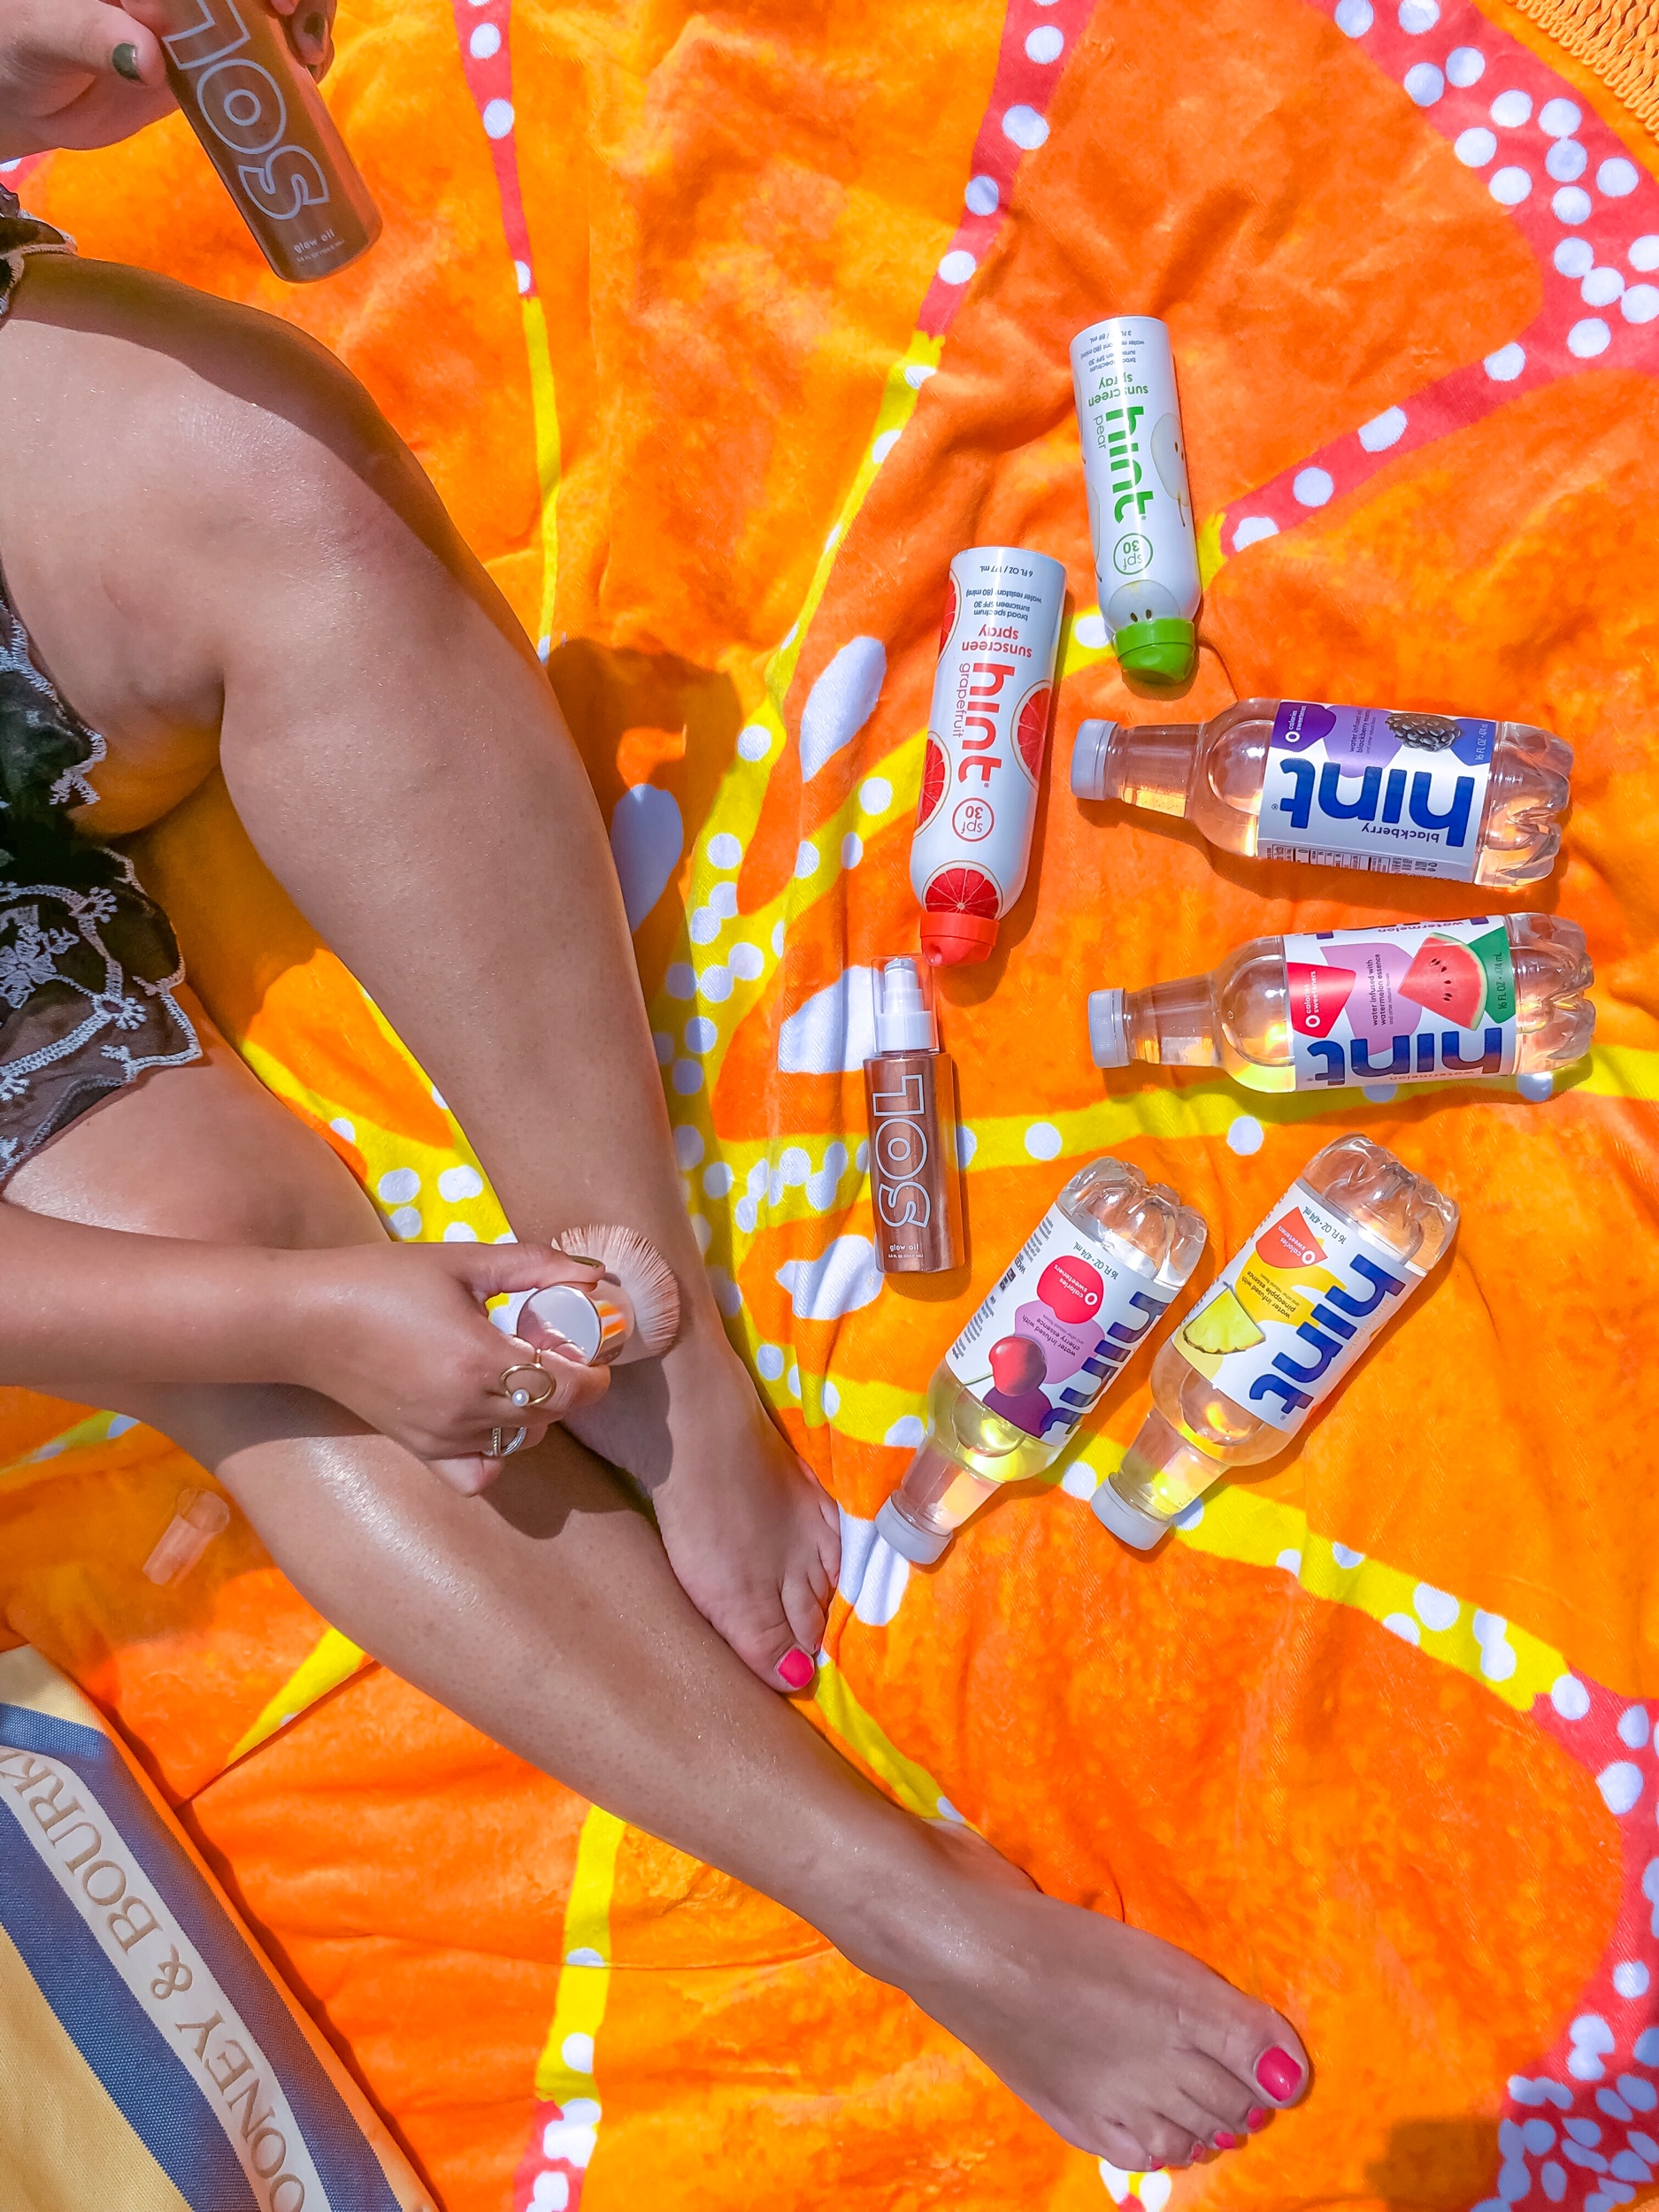 Hint water assorted flavors and their new sunscreen in pear & pineapple scents